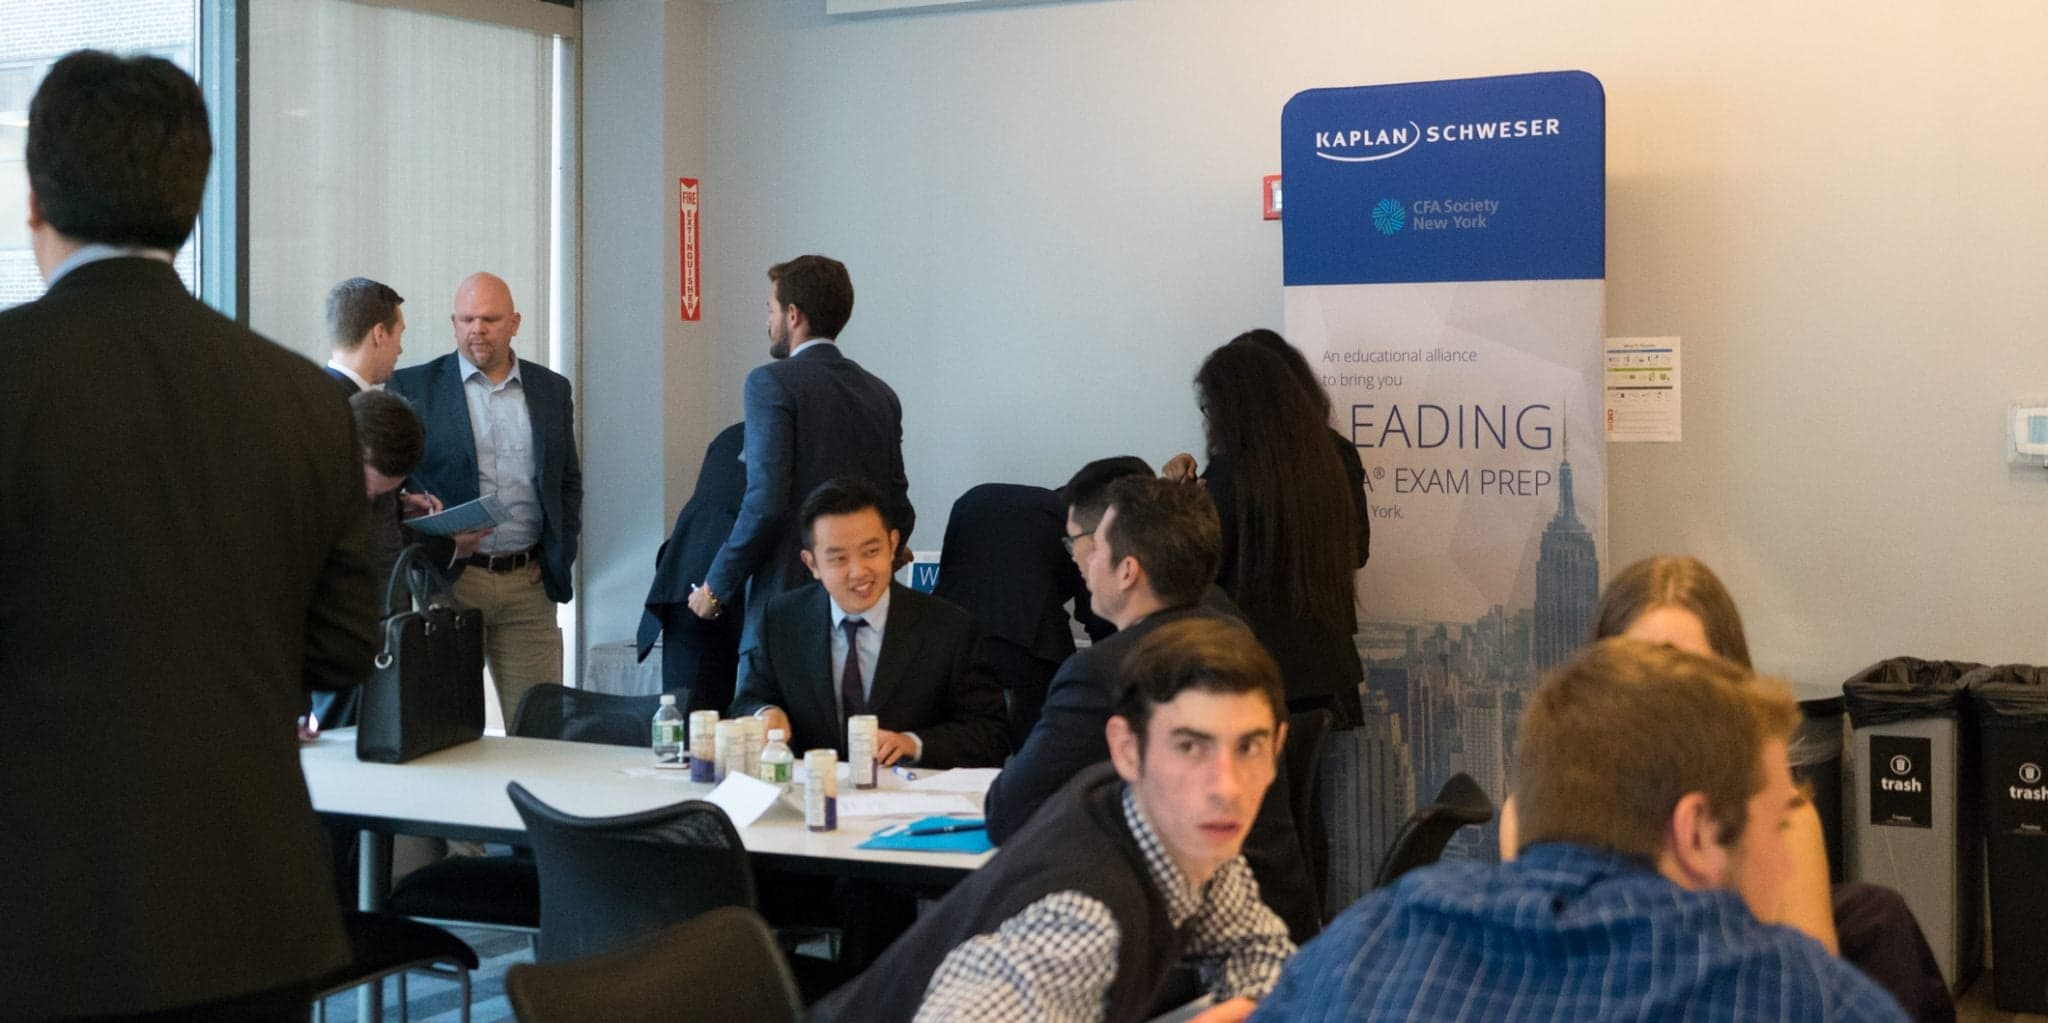 2018 CFA Research Challenge » CFA Society New York